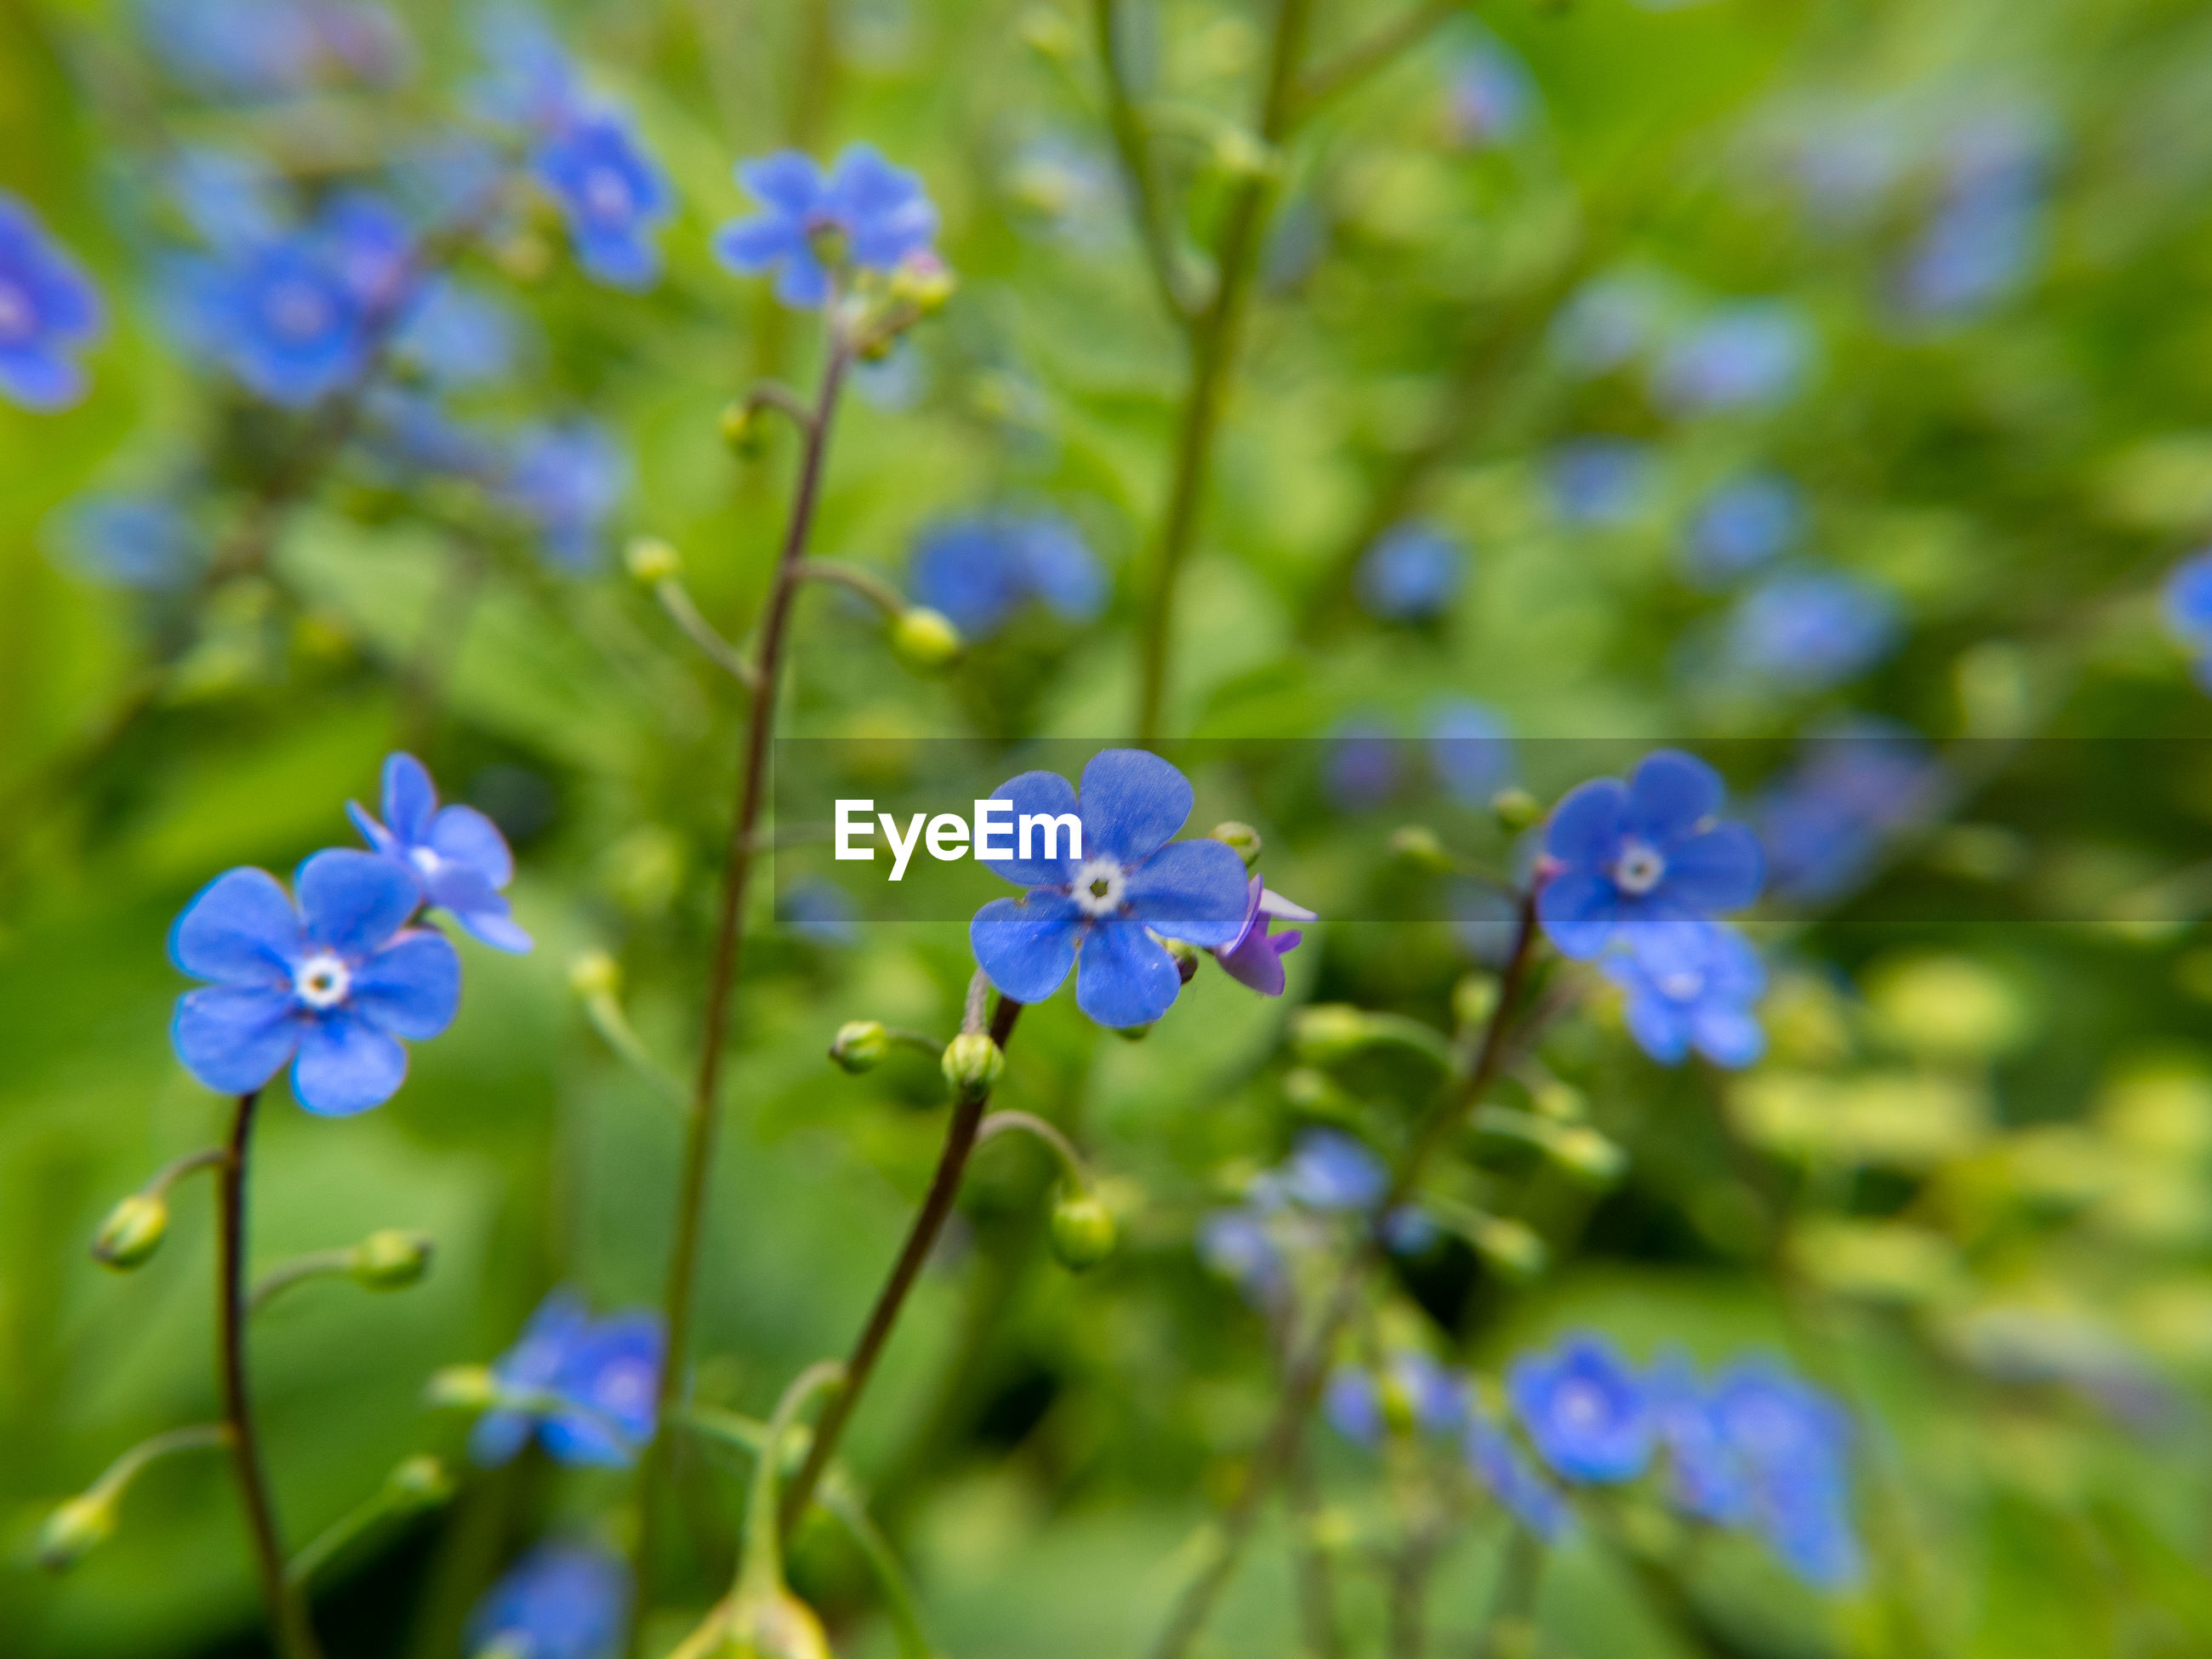 CLOSE-UP OF BLUE FLOWERING PLANTS